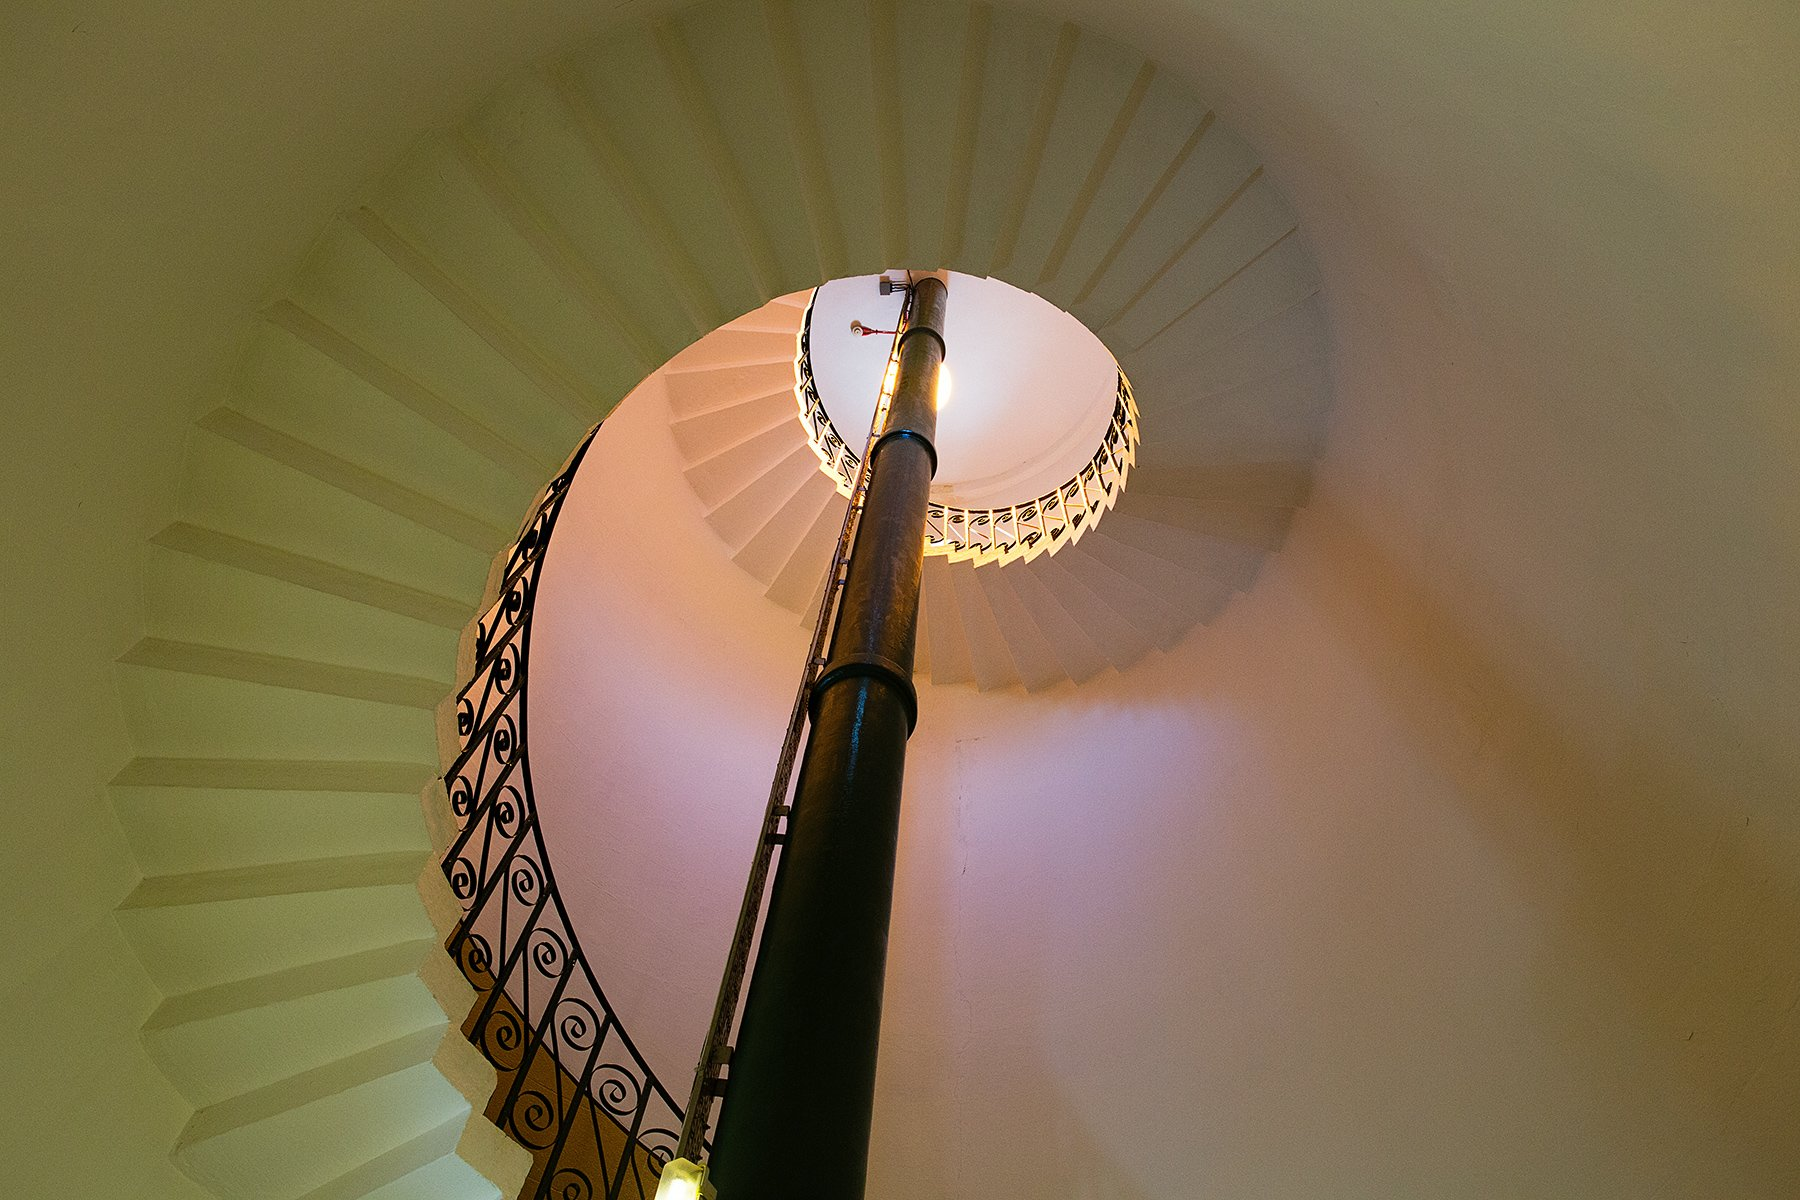 Inside of Flamborough Head Lighthouse